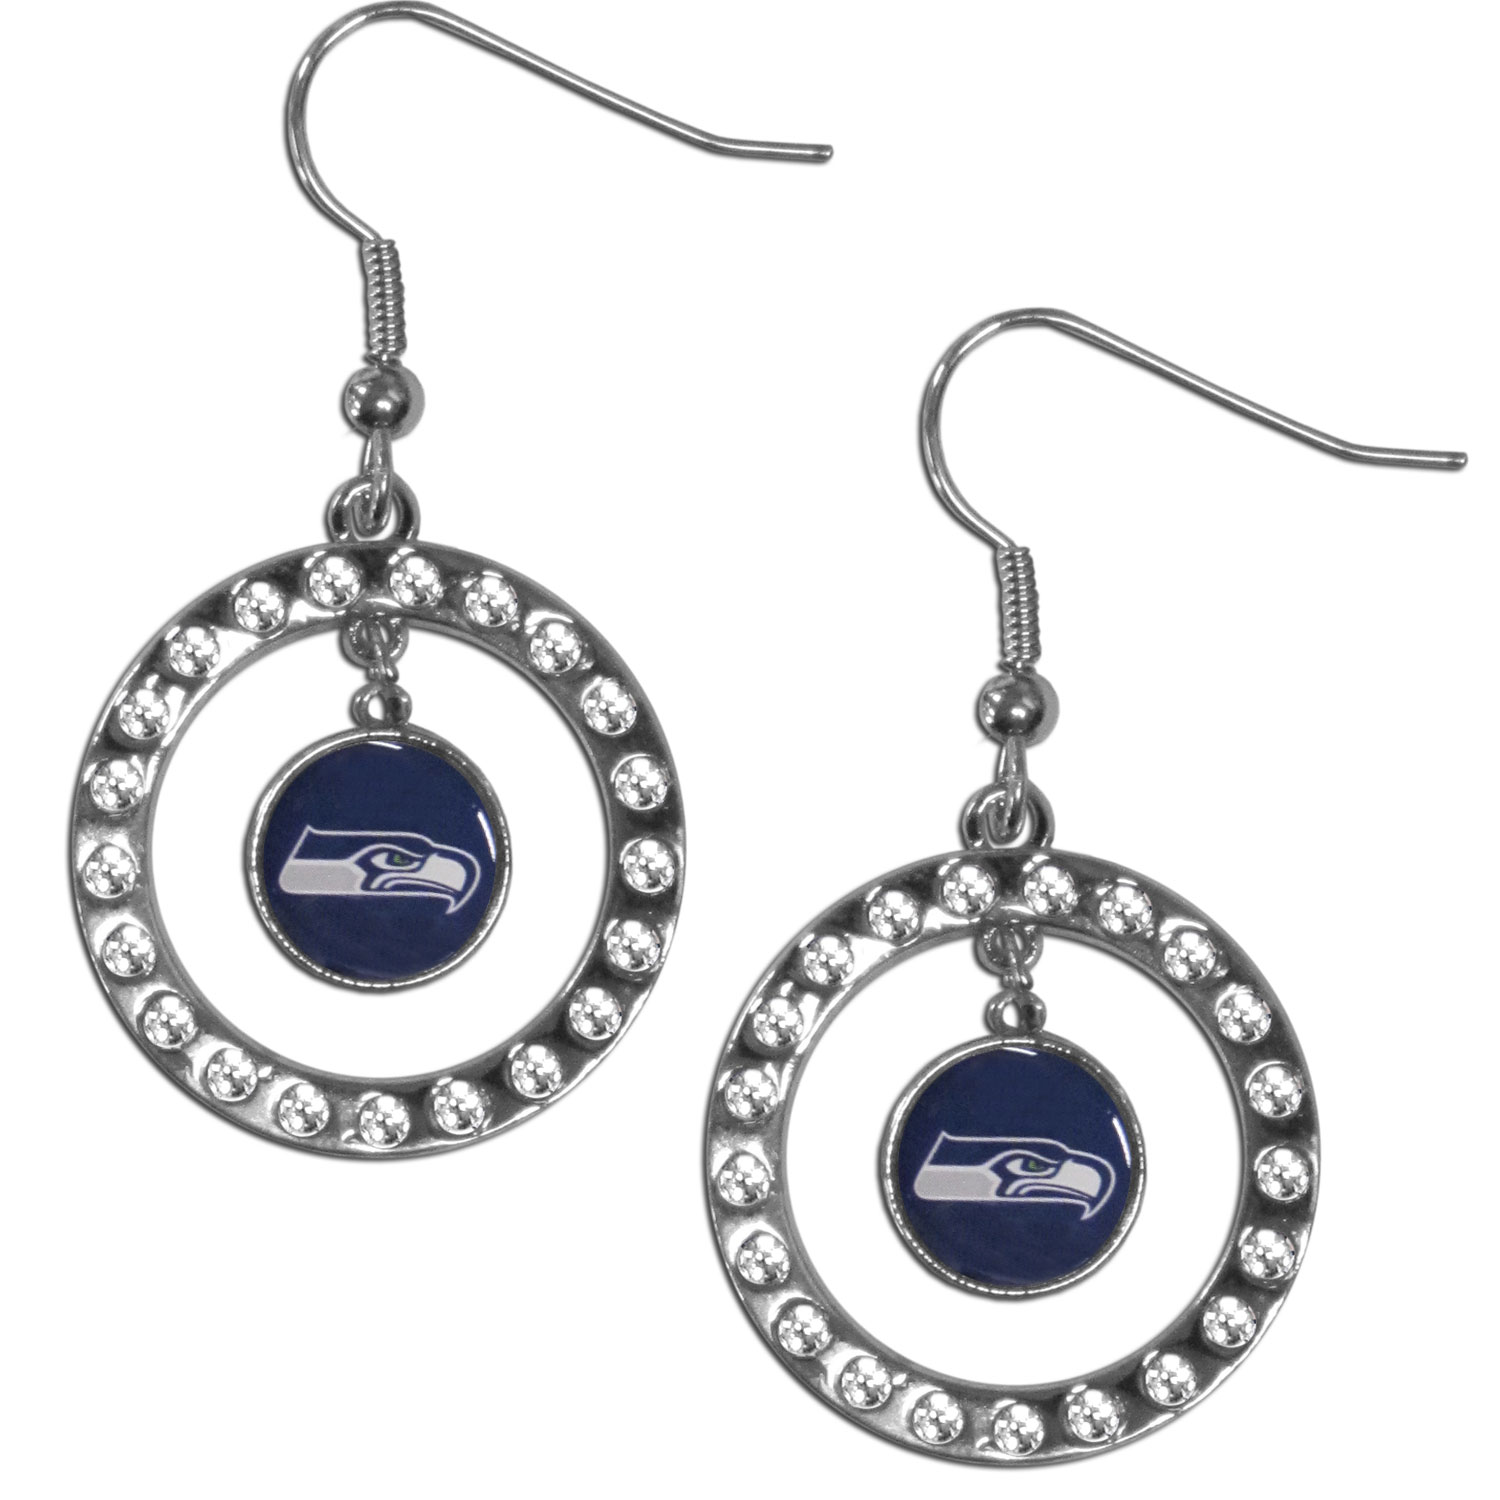 Seattle Seahawks Rhinestone Hoop Earrings - Our officially licensed rhinestone hoop earrings comes on an hypo-allergenic fishhook posts  and features a hoop covered in rhinestones with a high polish chrome finish and a Seattle Seahawks logo dangling in the center.